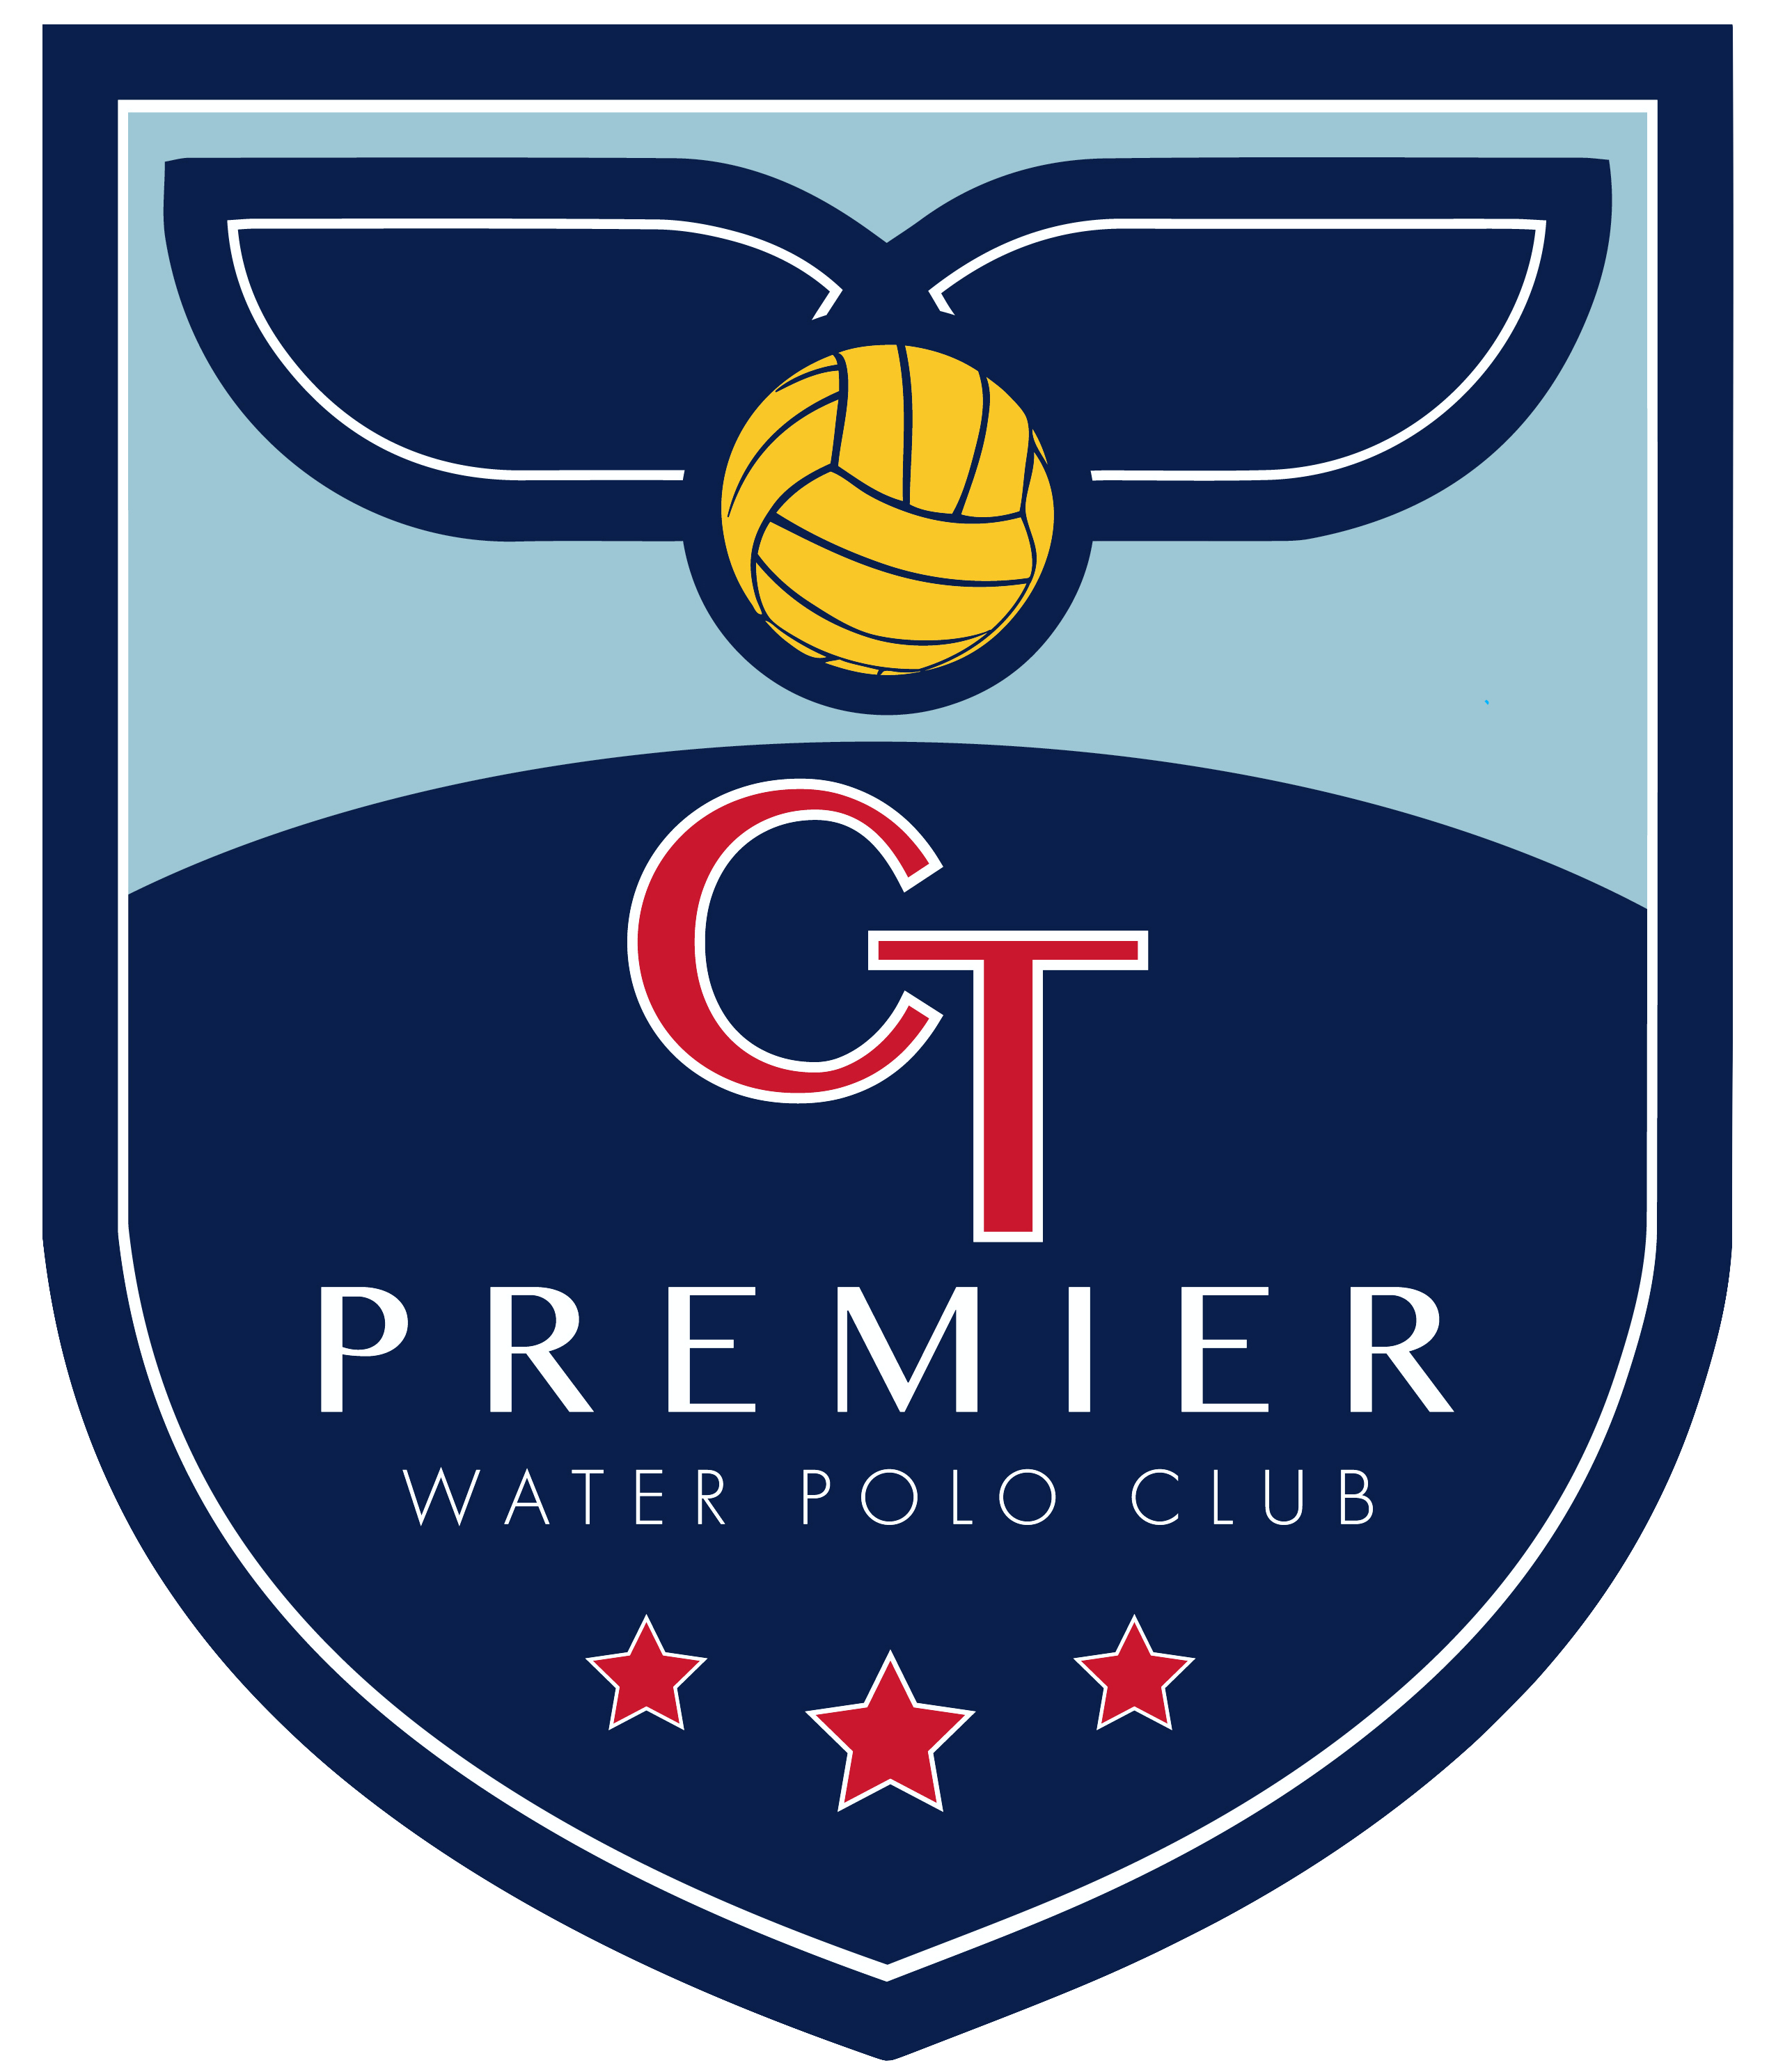 CT PREMIER WATER POLO CLUB